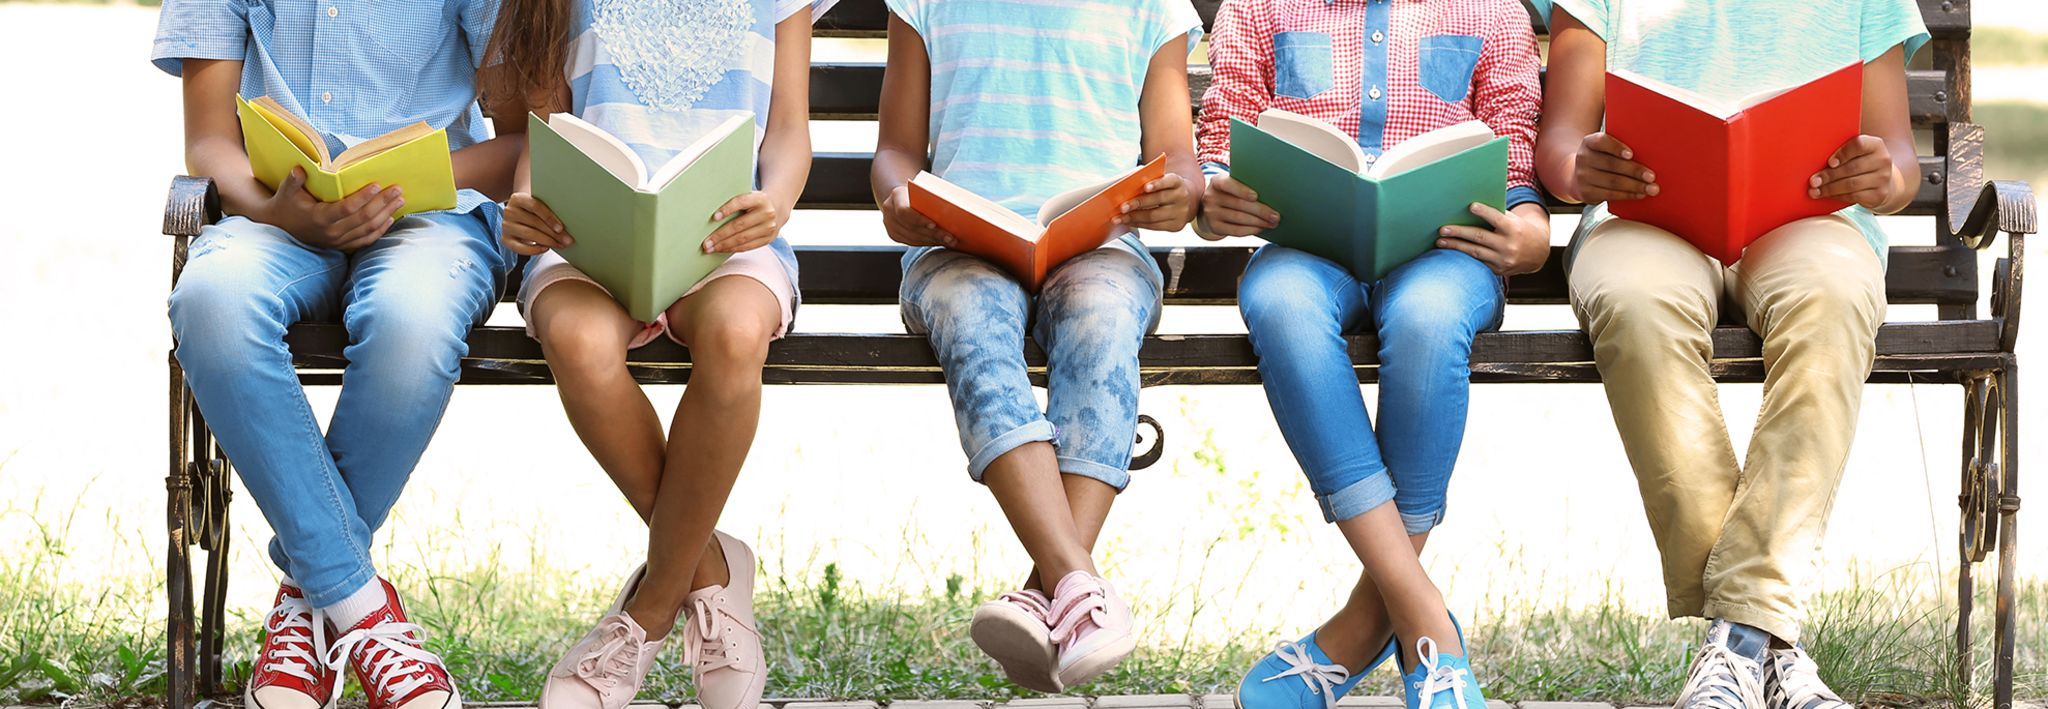 Kids posing for a cute picture on a bench with their books.